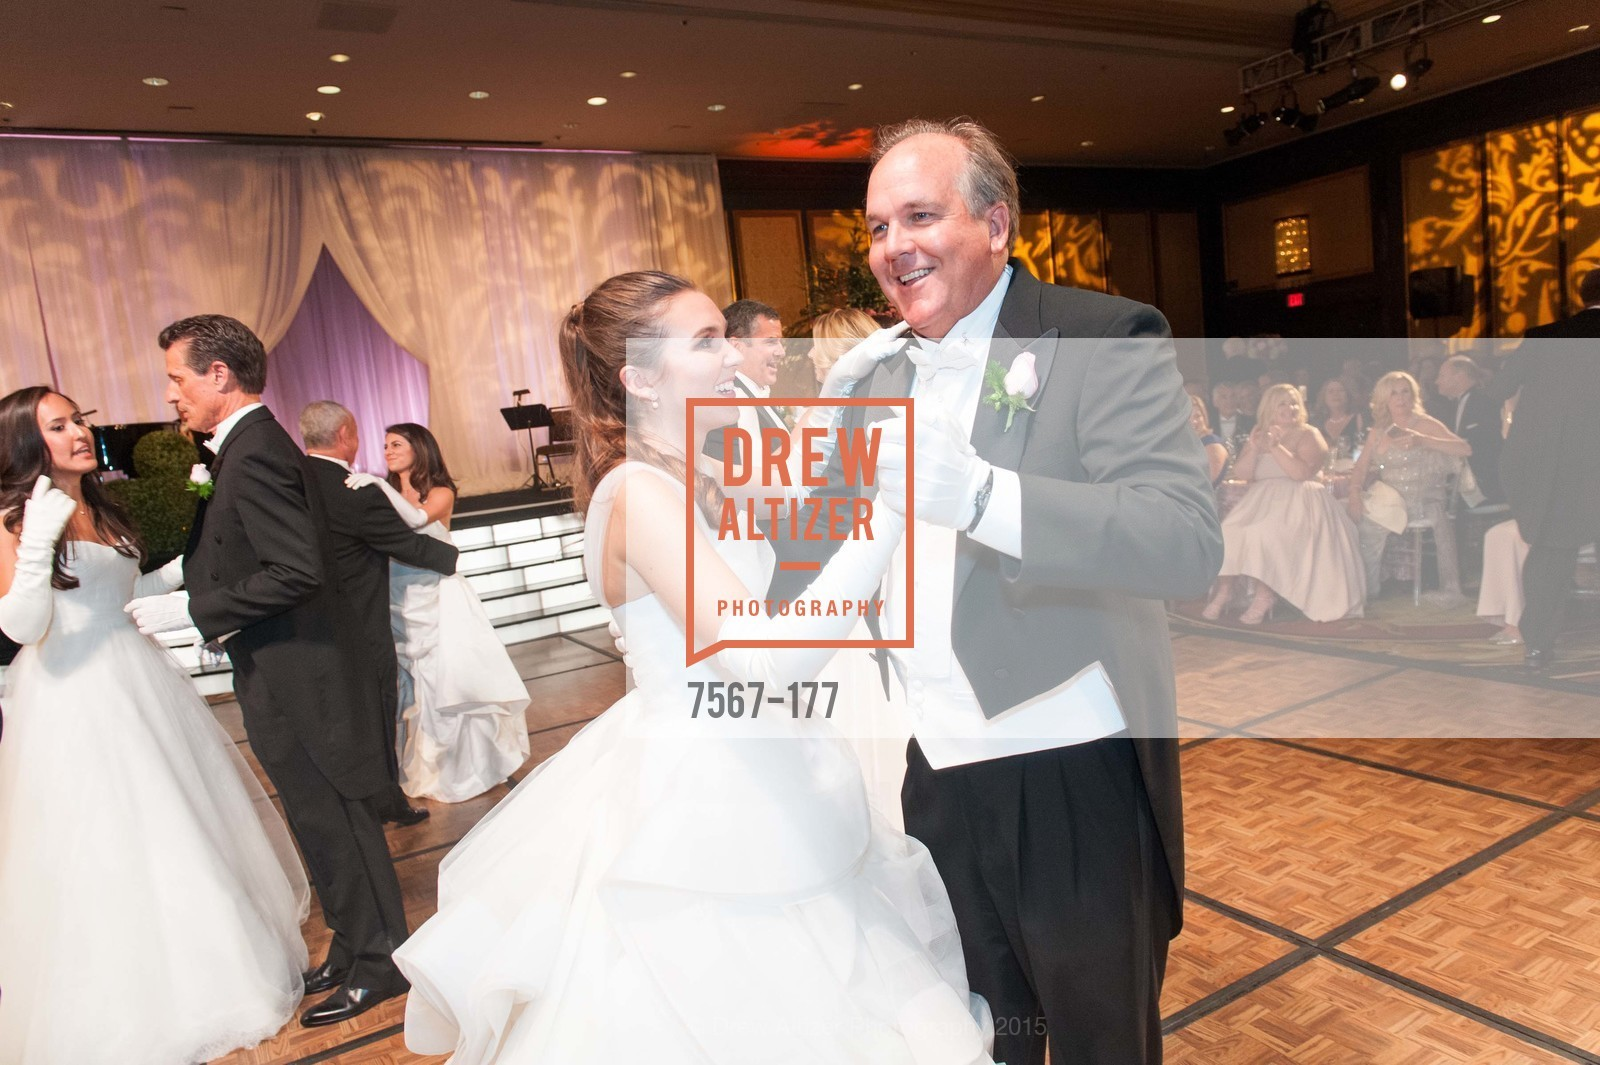 Extras, The 2015 San Francisco Debutante Ball, June 20th, 2015, Photo,Drew Altizer, Drew Altizer Photography, full-service agency, private events, San Francisco photographer, photographer california